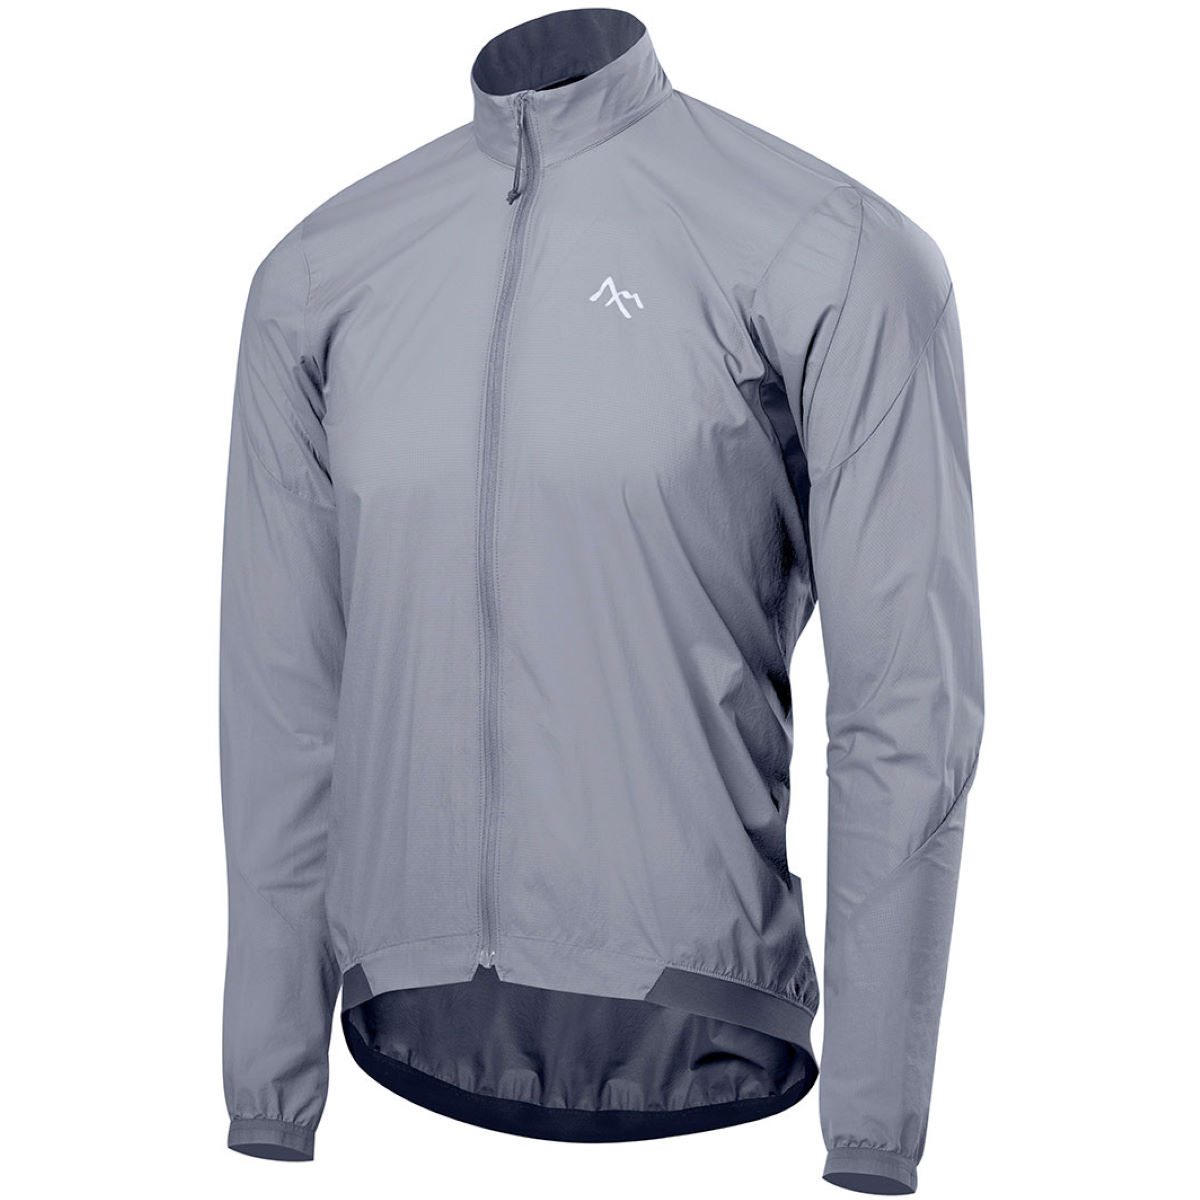 Veste 7Mesh Northwoods - 2XL Titane Coupe-vents vélo